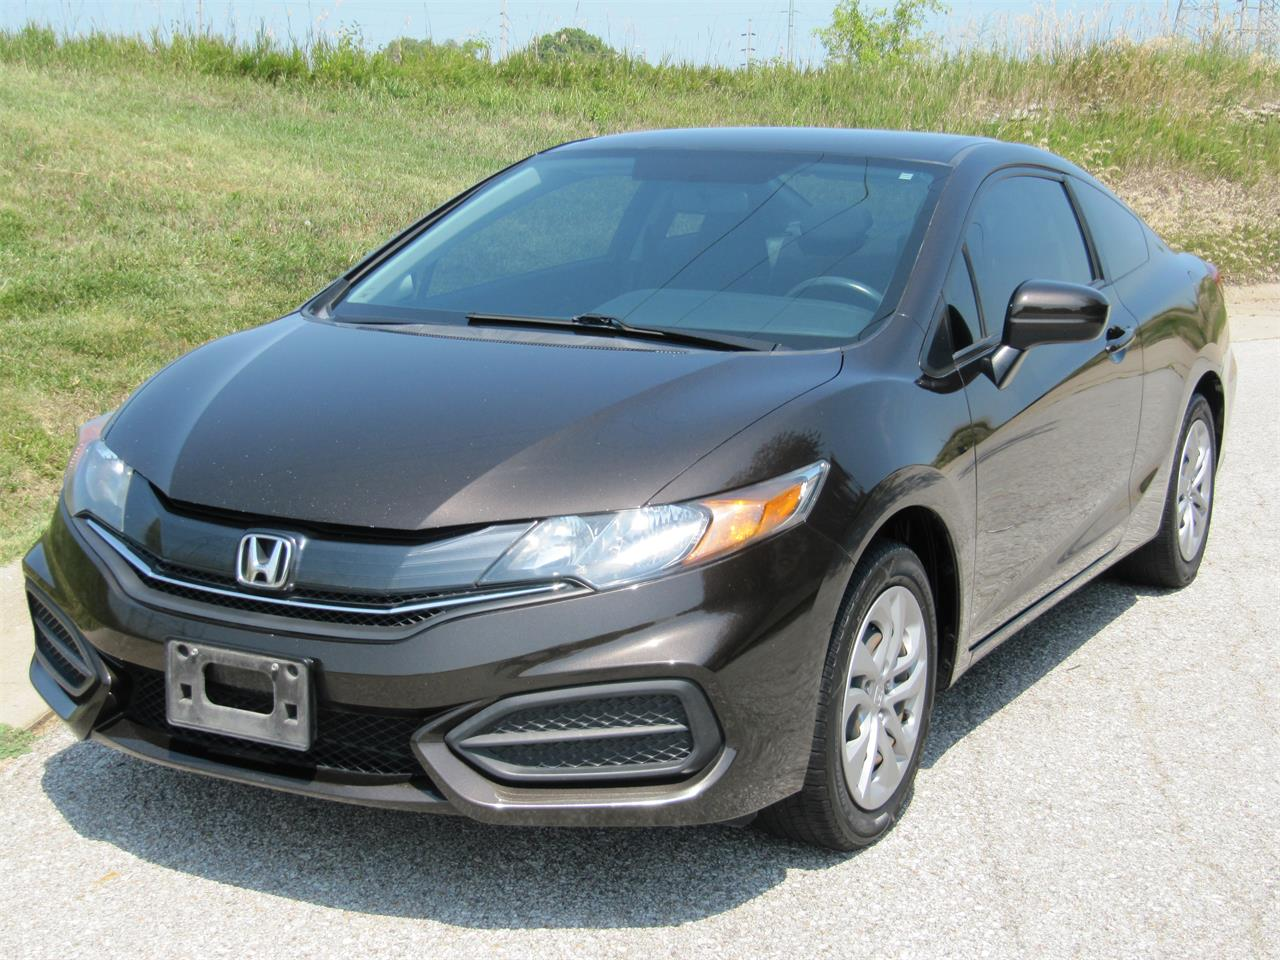 Large Picture of '14 Civic - $10,975.00 - QPBK